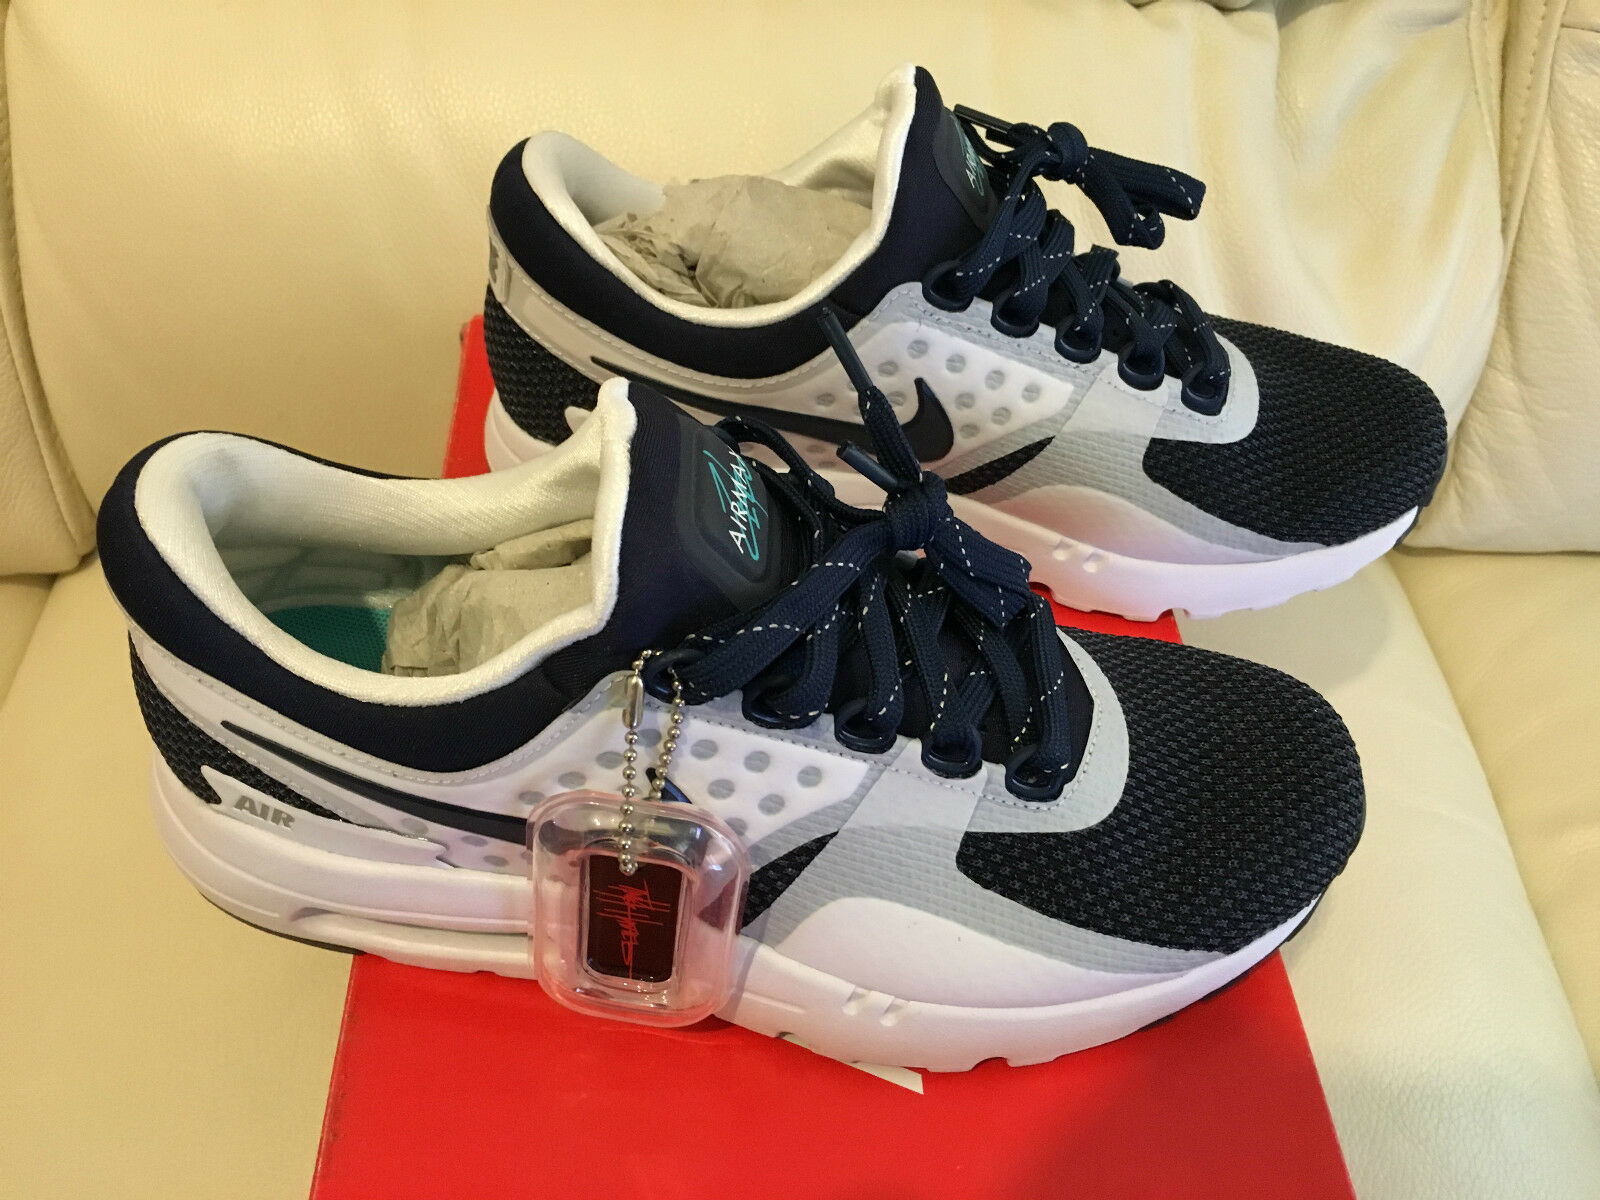 NIKE AIR MAX ZERO TRAINERS Chaussures SNEAKERS SIZE3 3.5 4 5.5 6 7 10.5 11 12 NEW